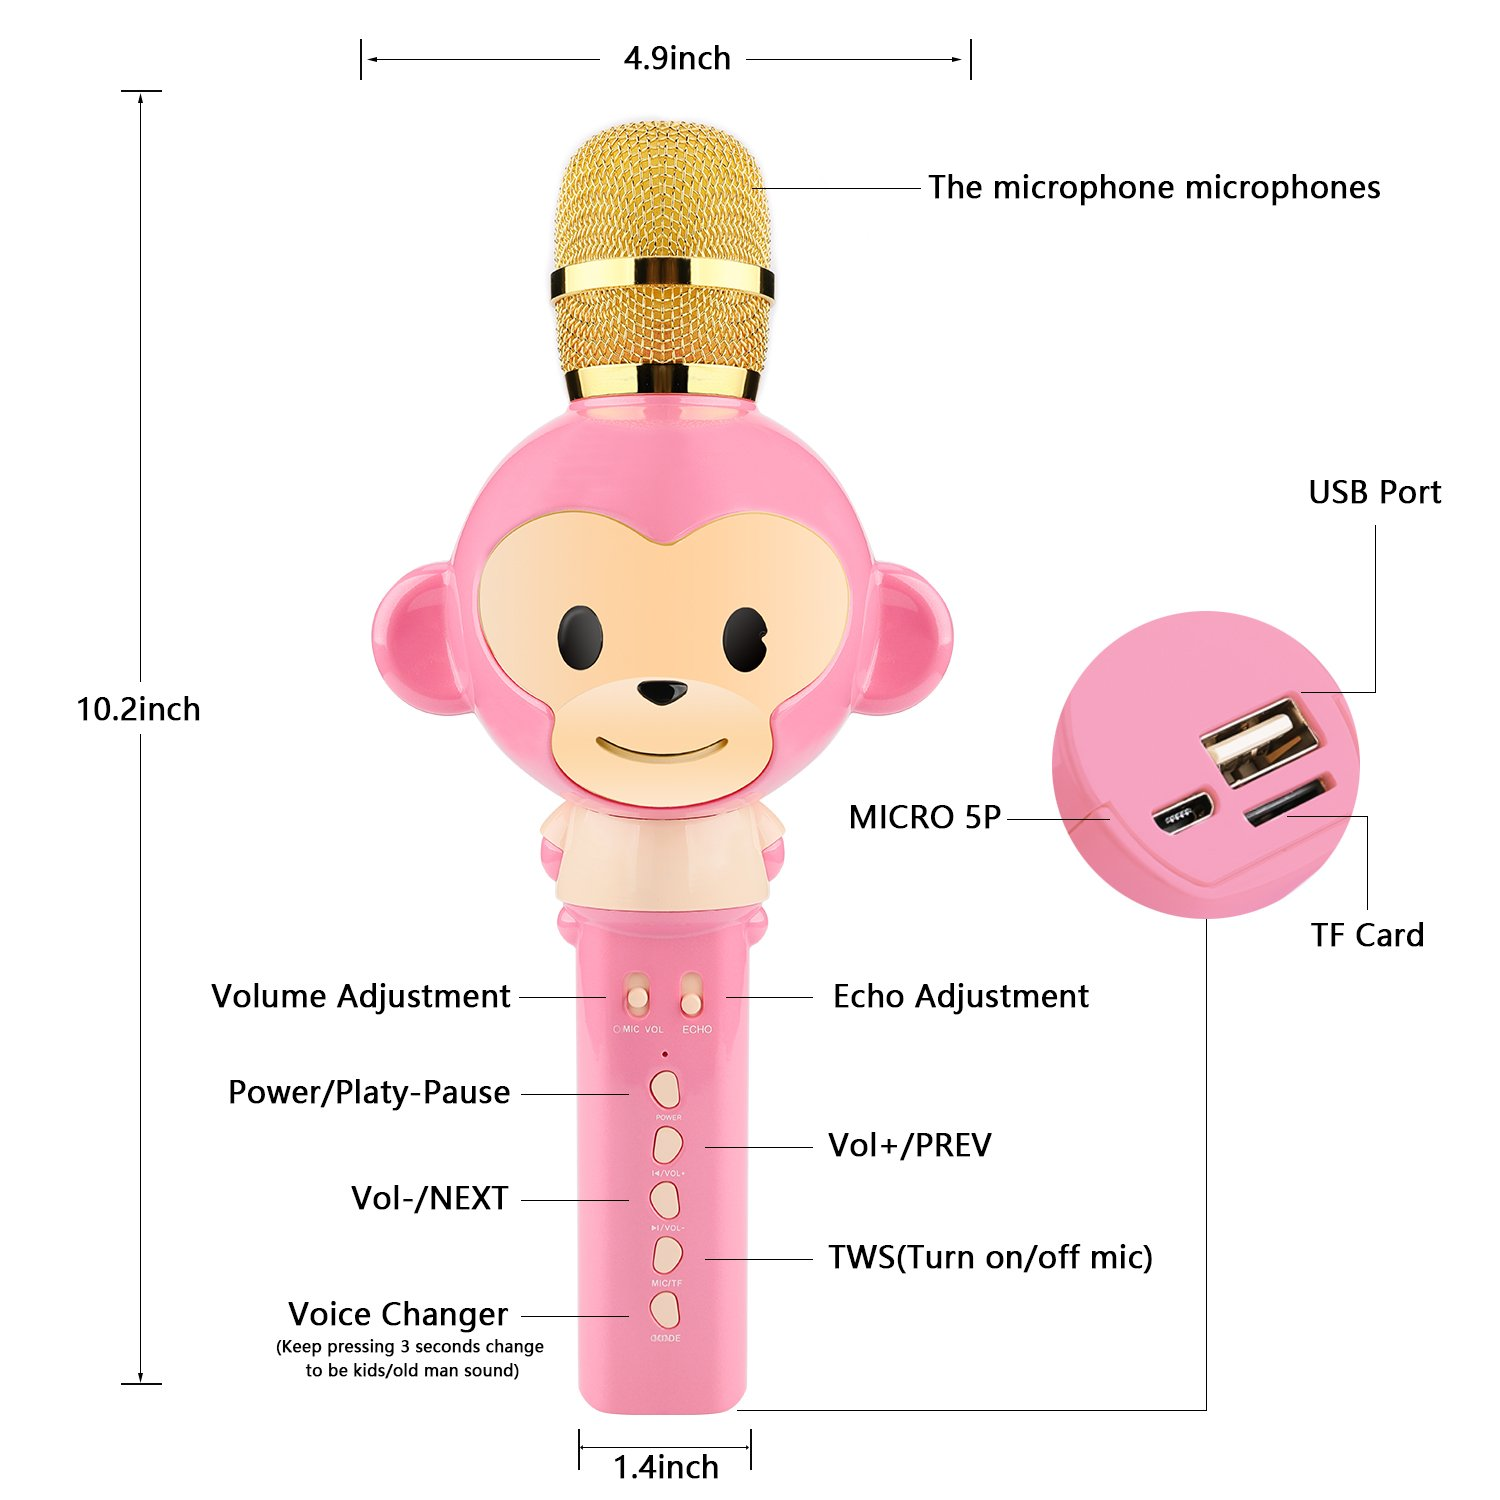 Microphone for Kids Children Karaoke Microphone Bluetooth Wireless Microphone Portable Handheld Karaoke Machine Toys Gifts Singing Recording Home KTV Party iPhone Android PC Smartphone (Pink) by Seelin (Image #2)